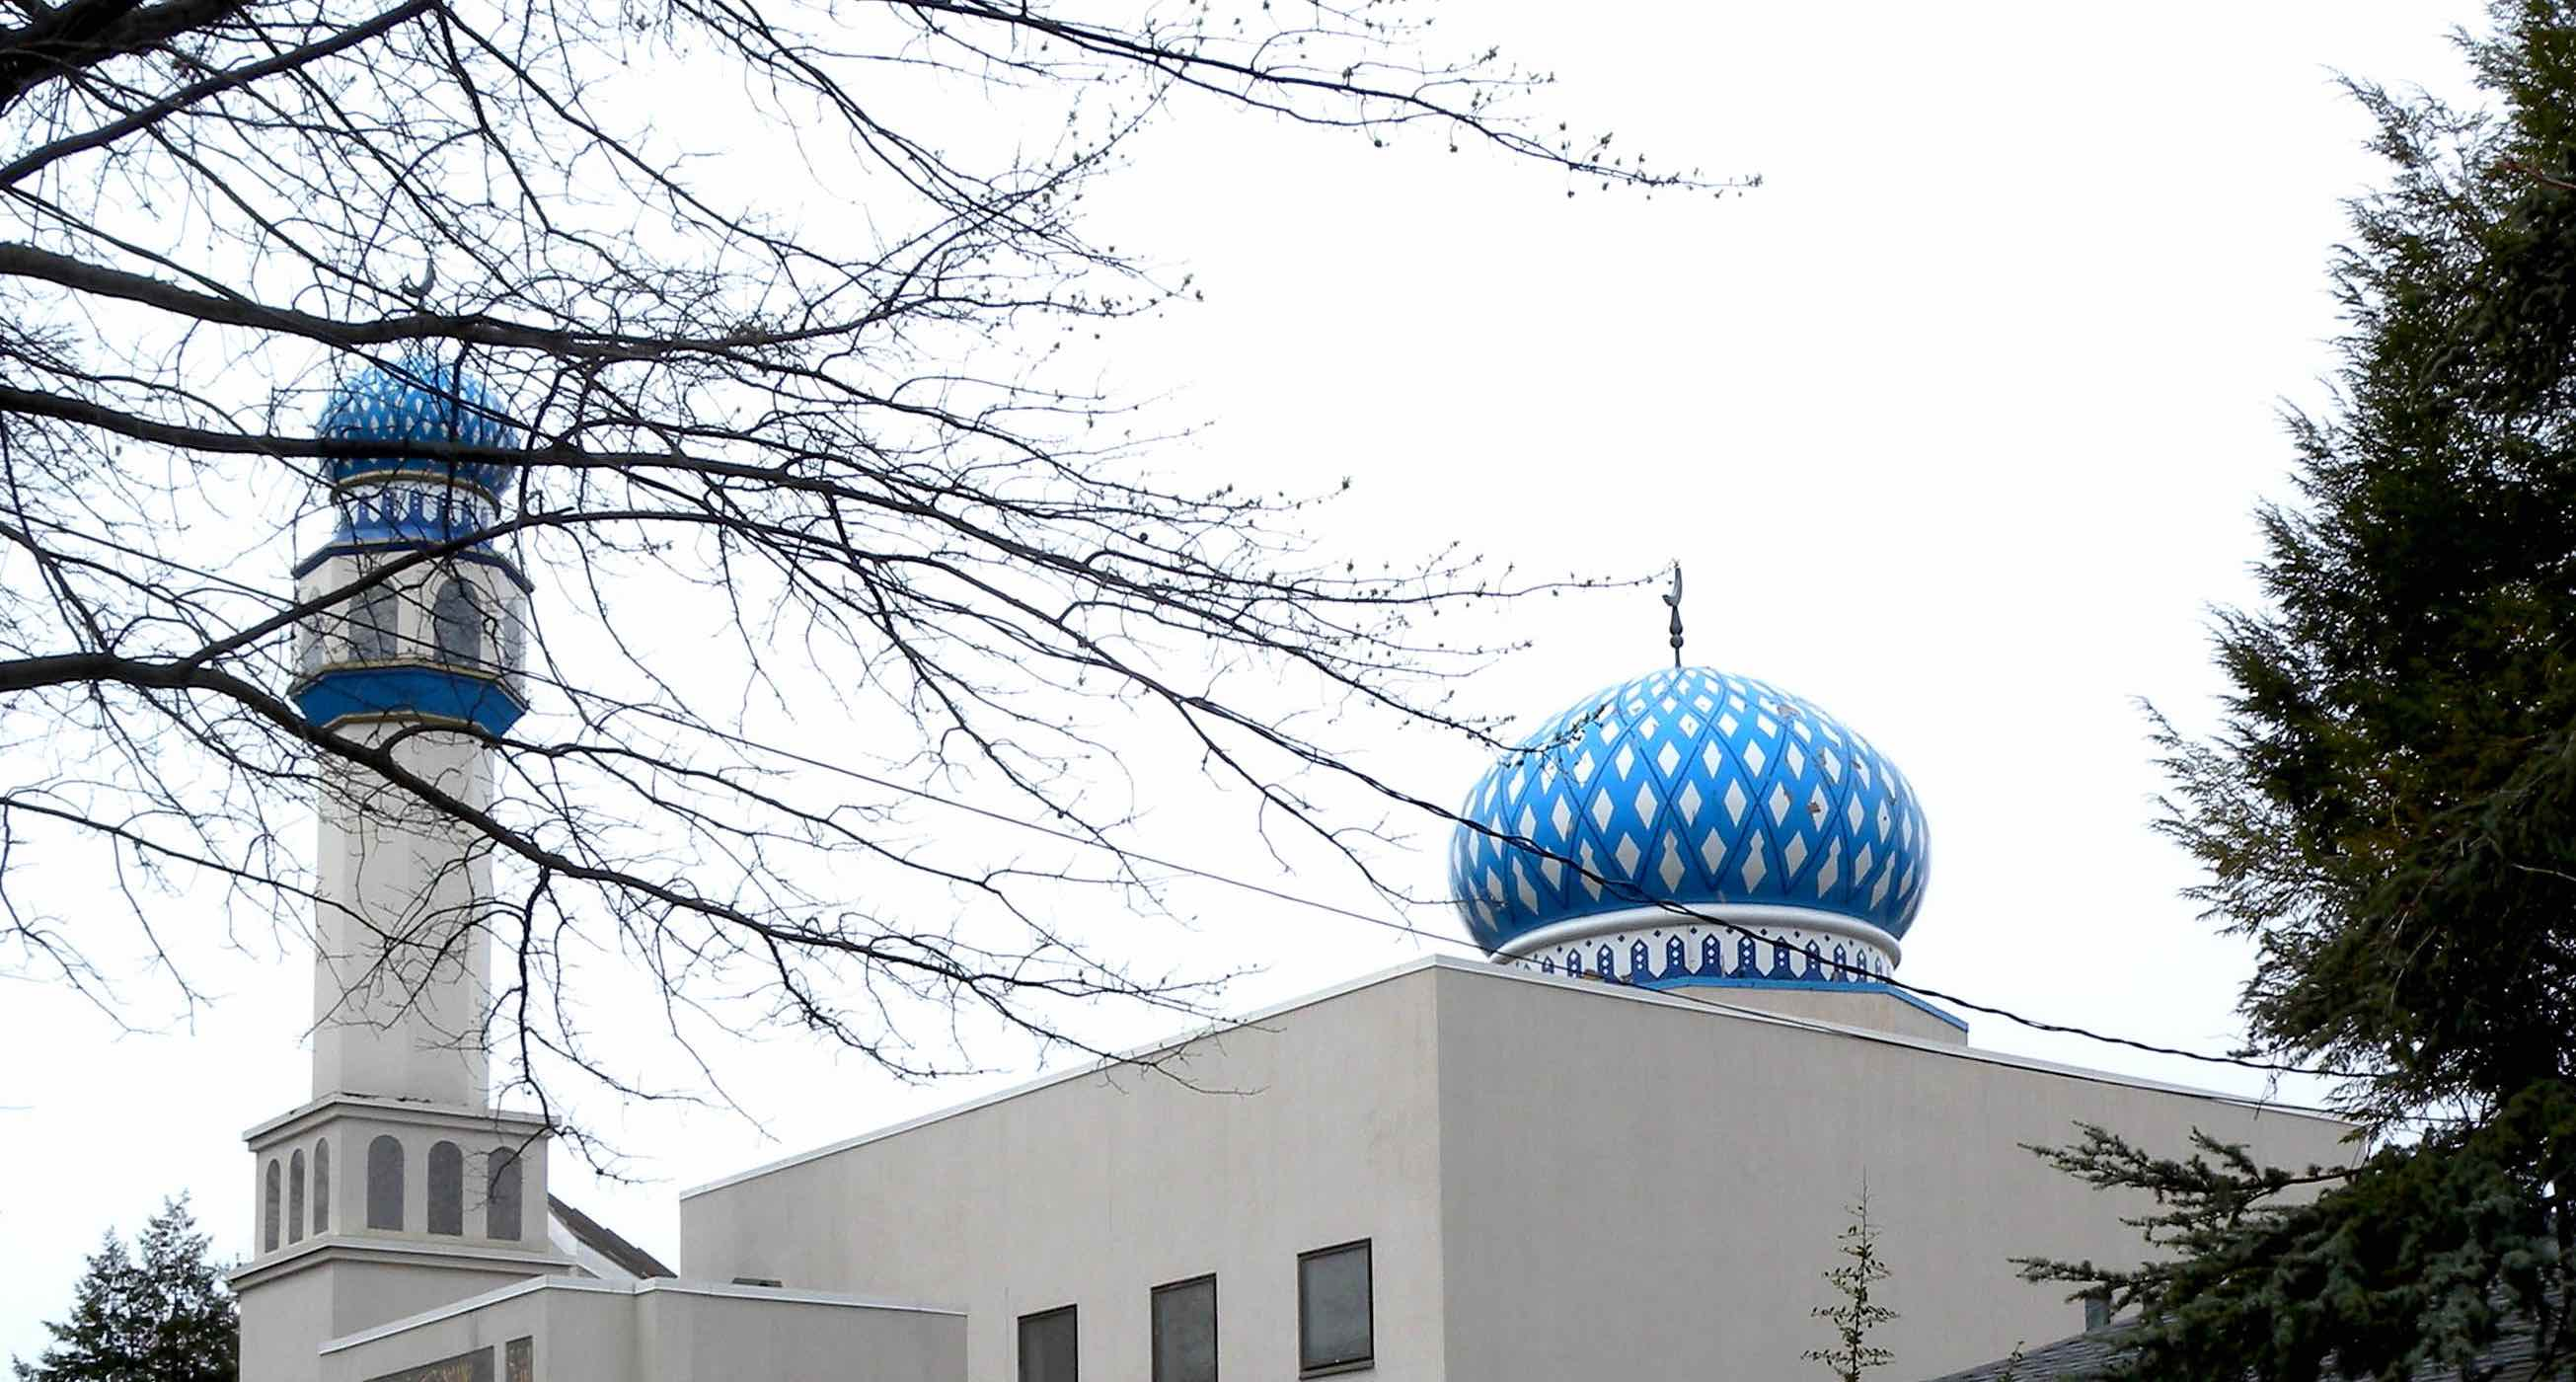 An American mosque with a blue dome